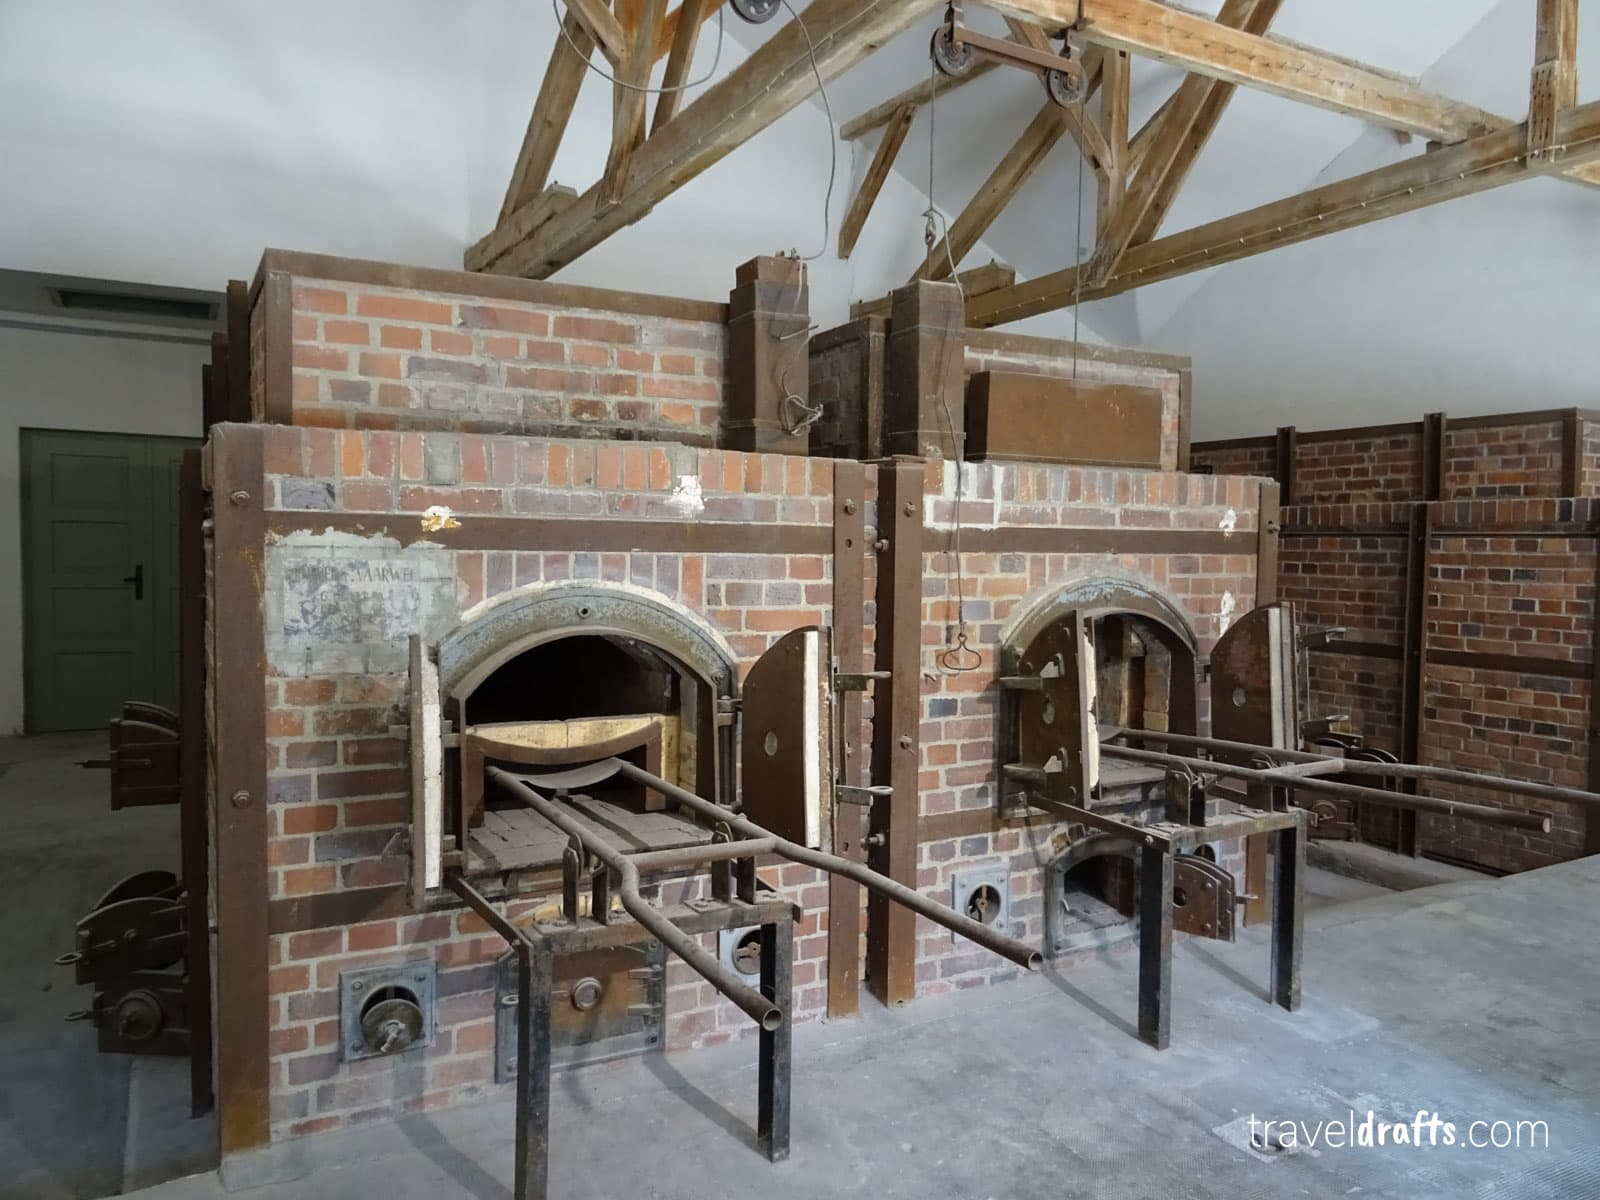 Reasons to visit Dachau Concentration Camp